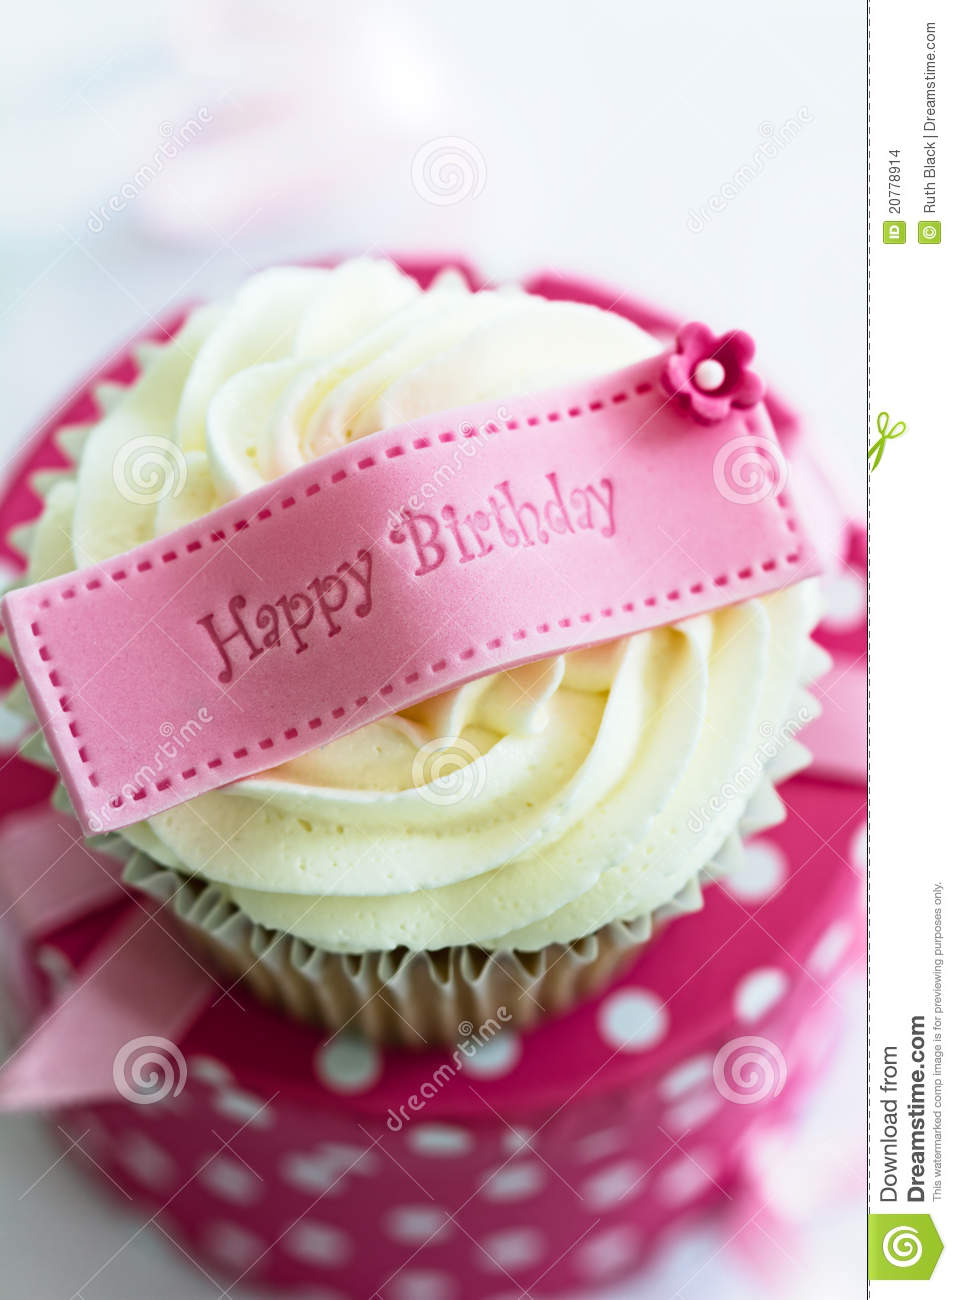 Mothers Day Hd Wallpaper Happy Birthday Cupcake Stock Photo Image Of Nobody